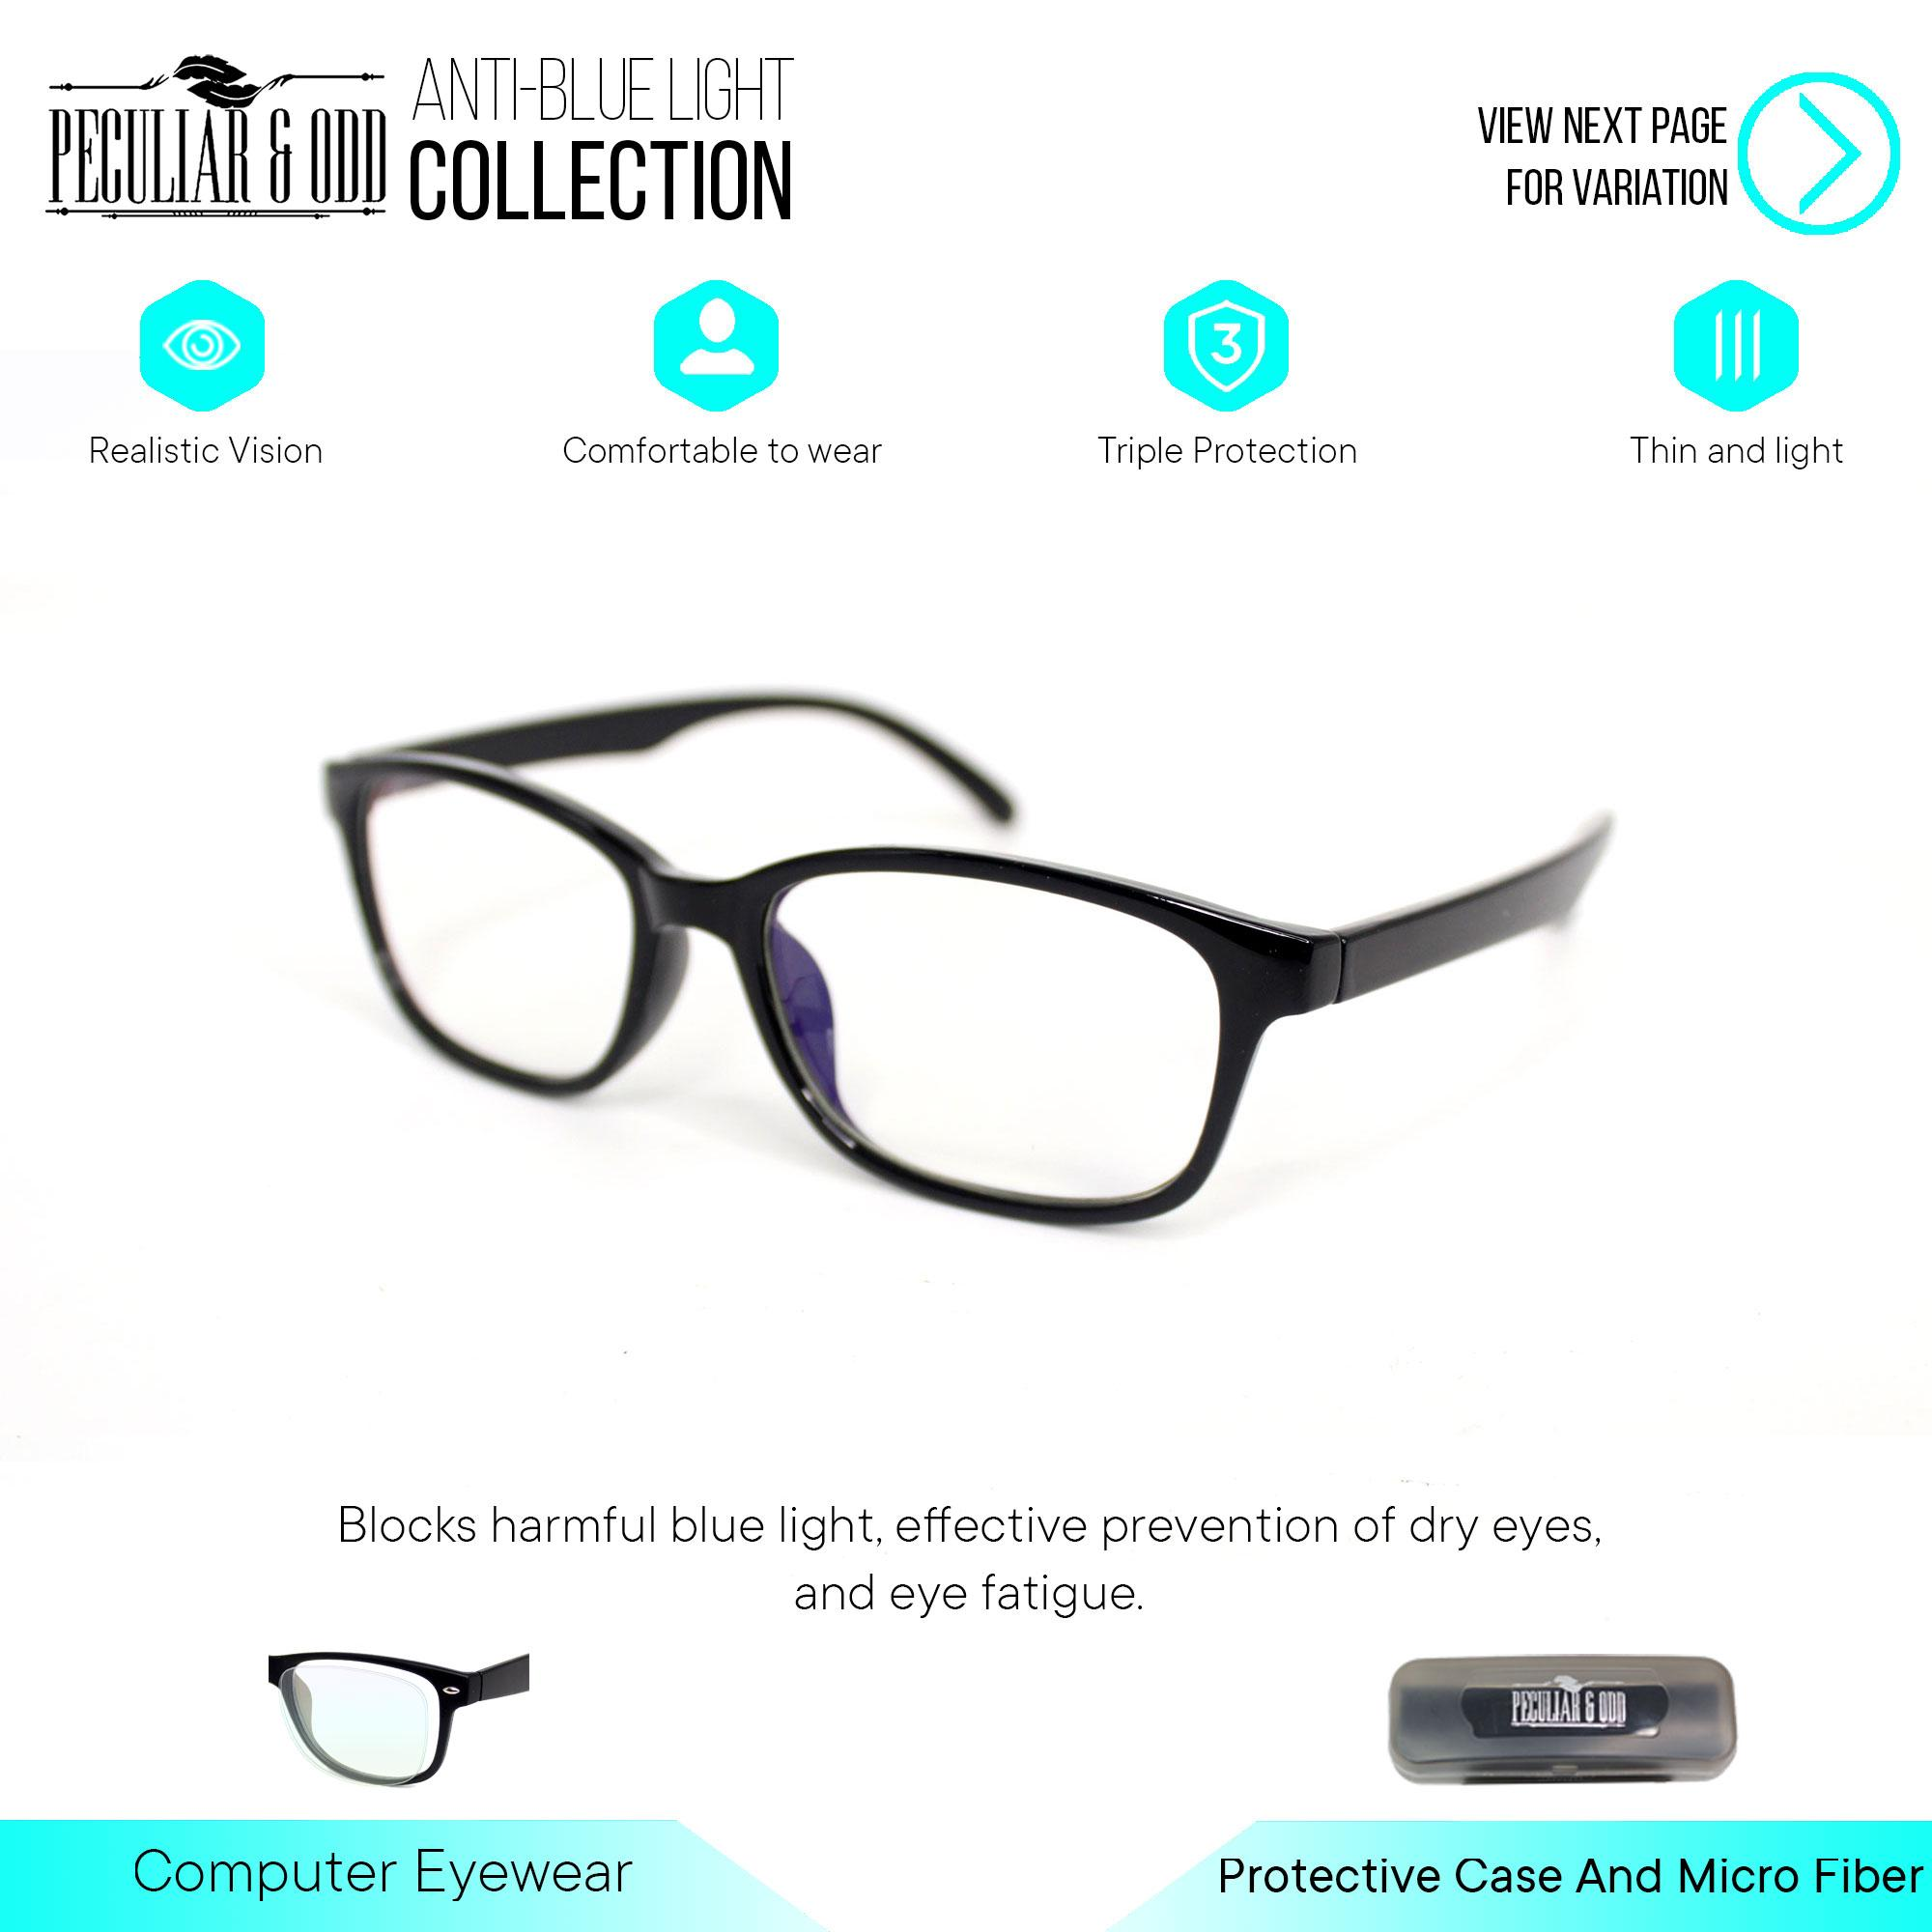 Peculiar Square 3028_coalblackclear Anti Radiation Computer Eyeglass Optical Replaceable Eyewear Unisex_new By Salimars Trading.